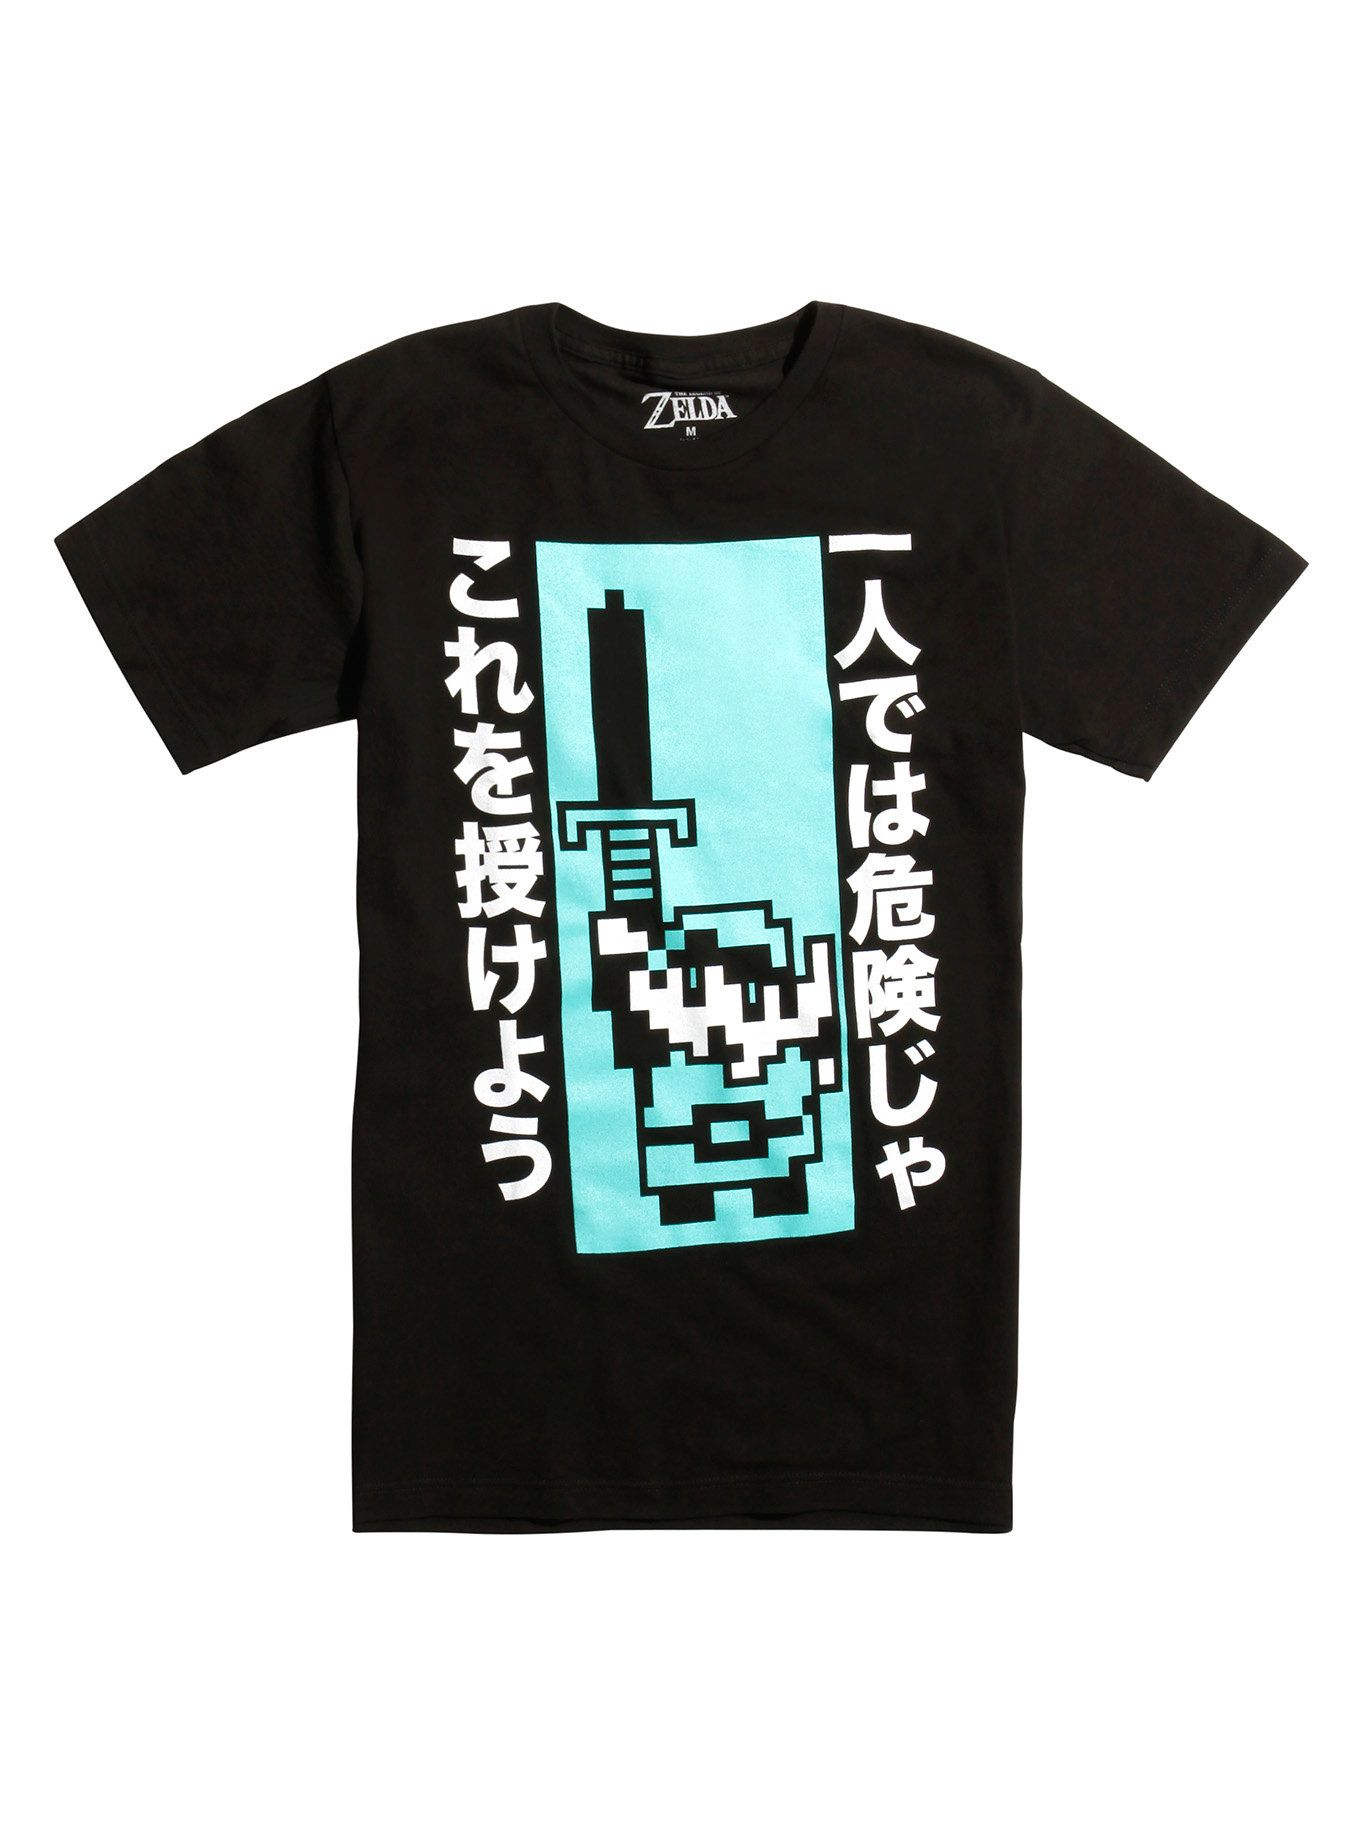 b779e5920 Kana lettering in teal runs vertically down both sides of a Japanese font  8-bit Link graphic. This online exclusive Nintendo The Legend Of Zelda  T-shirt is ...